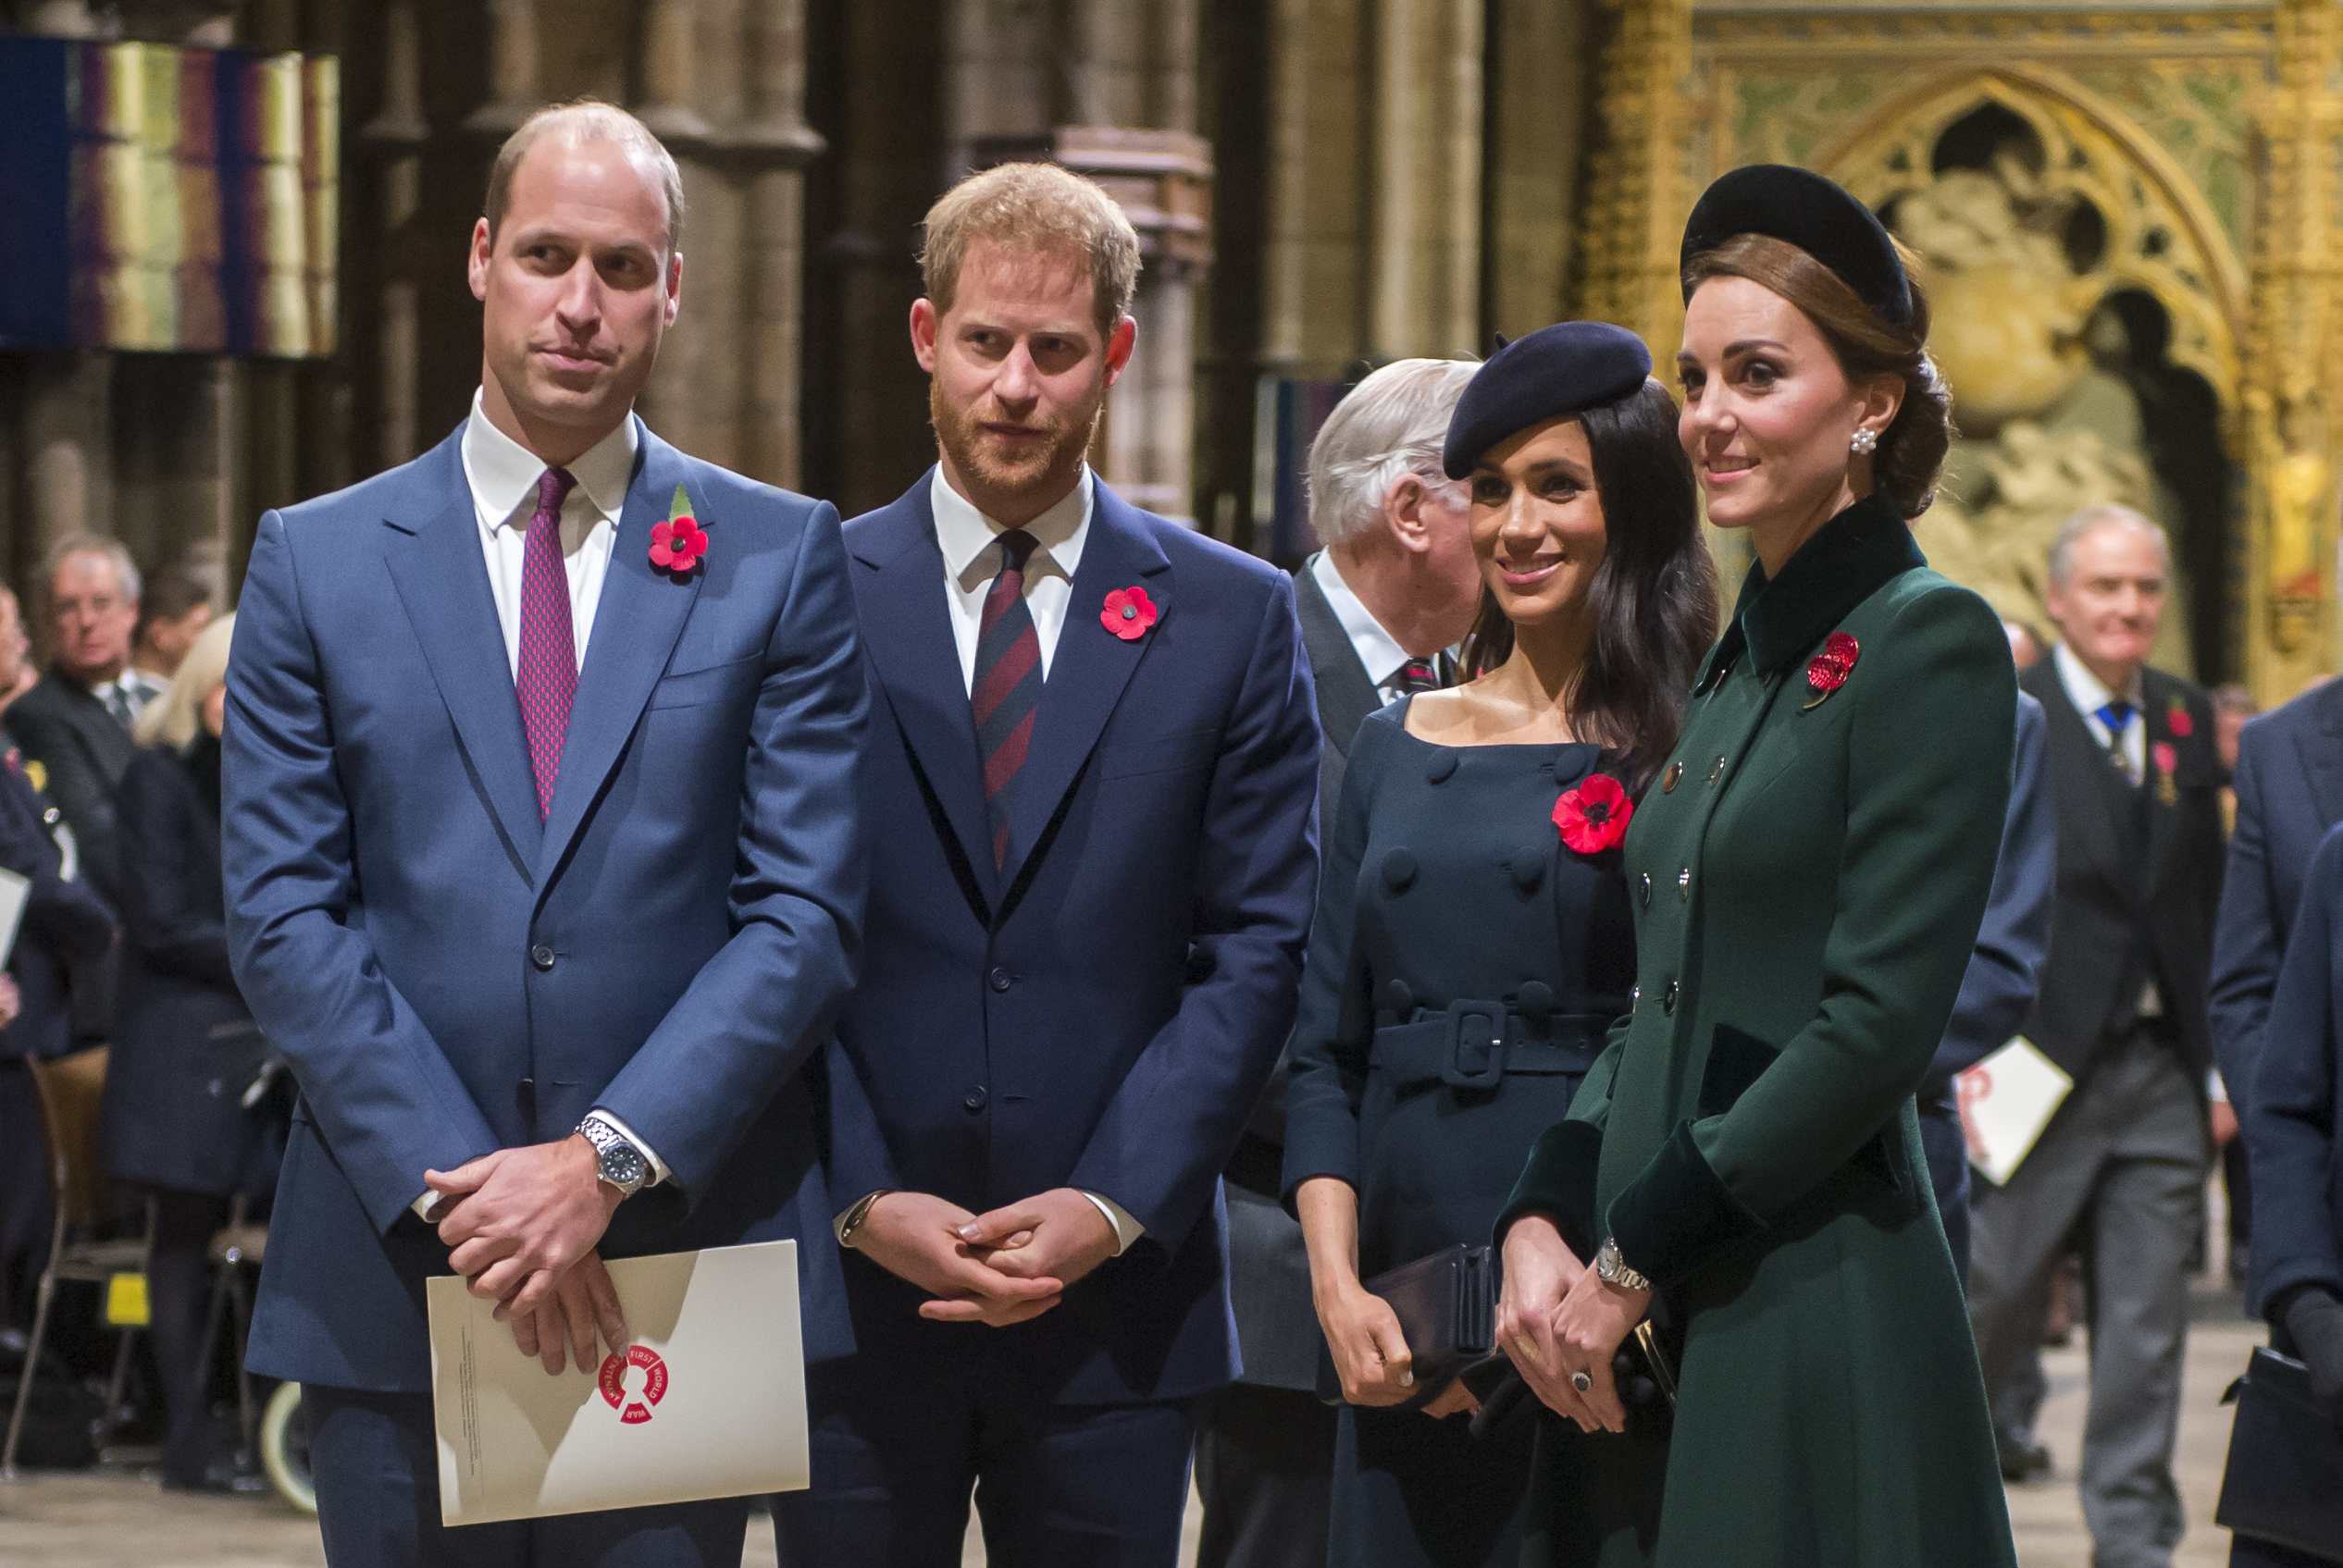 """Prince William, Prince Harry, Meghan Markle, and Kate Middleton, pictured together in 2018, will now lead very different lives, in the aftermath of """"Megxit."""" (Photo: Paul Grover- WPA Pool/Getty Images)"""